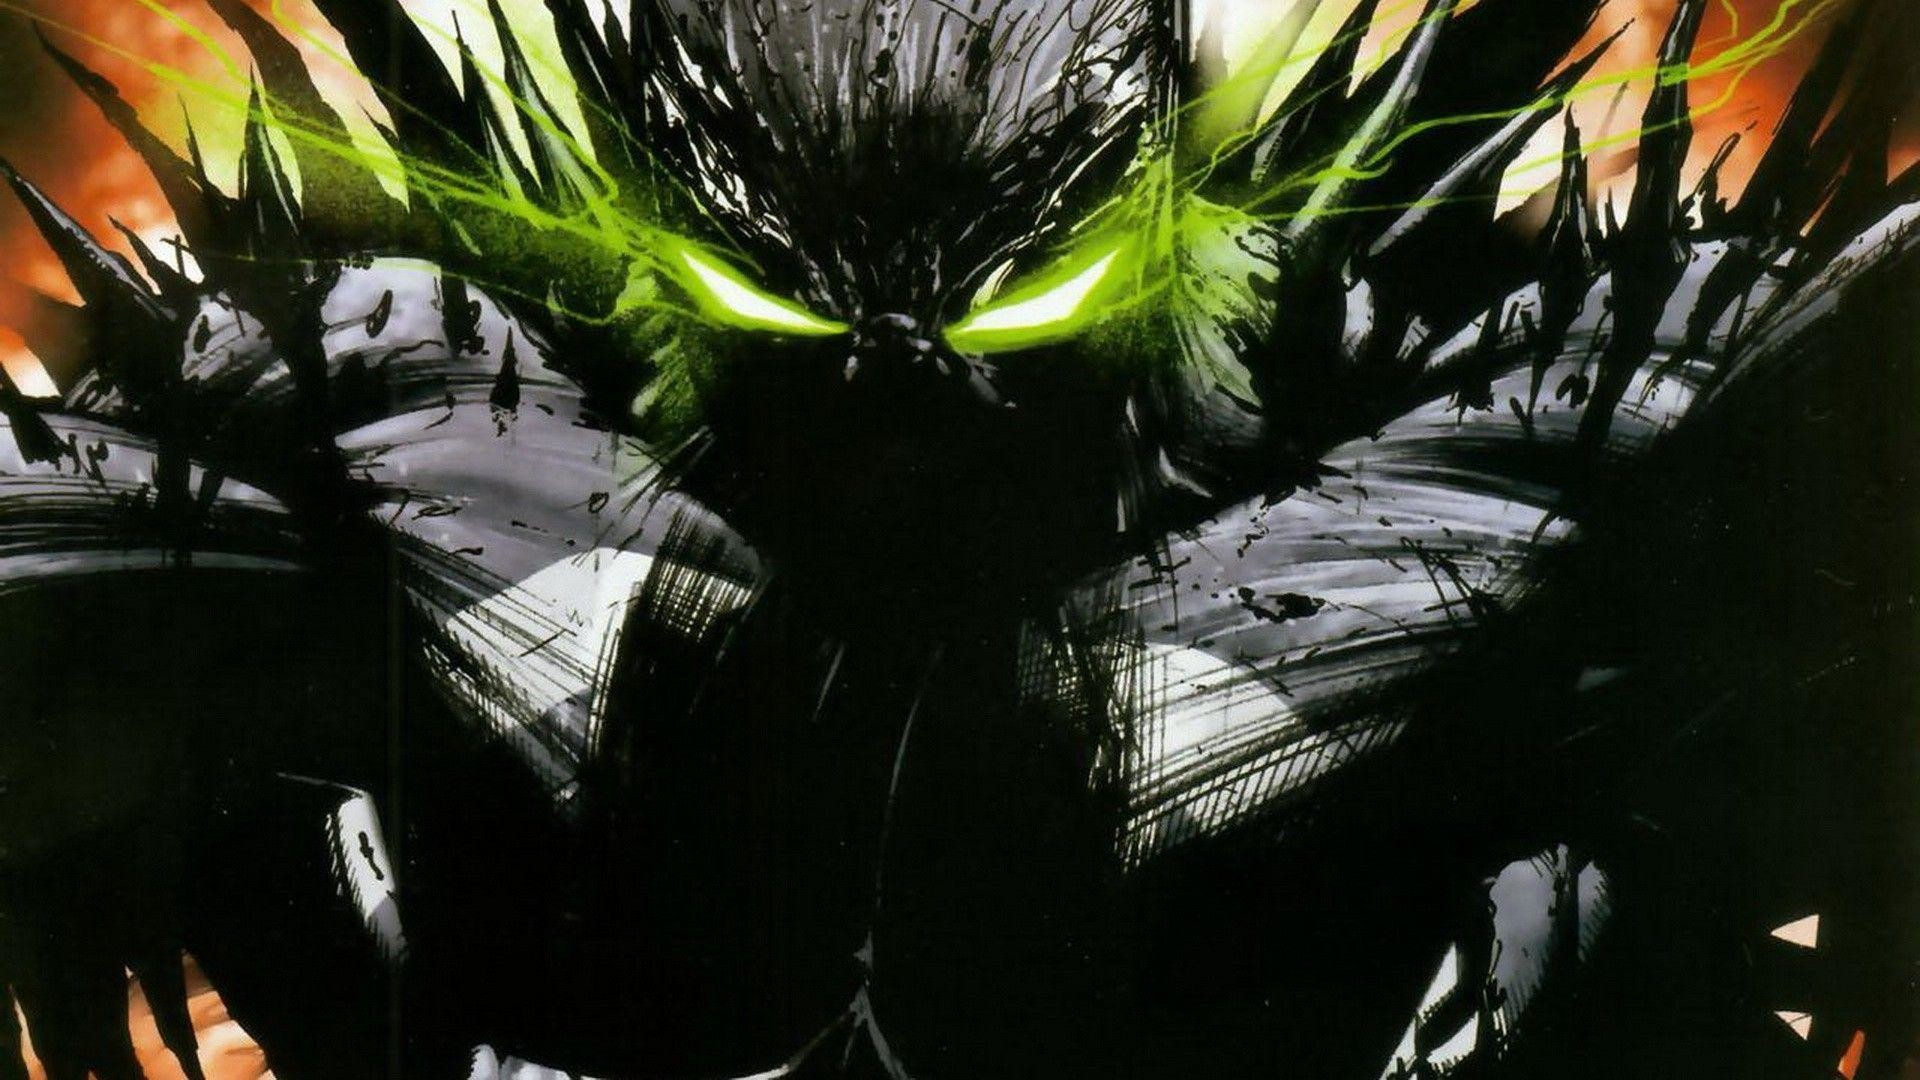 Spawn – Hd spawn wallpaper – Spawn wallpaper hd – Spawn pictures .